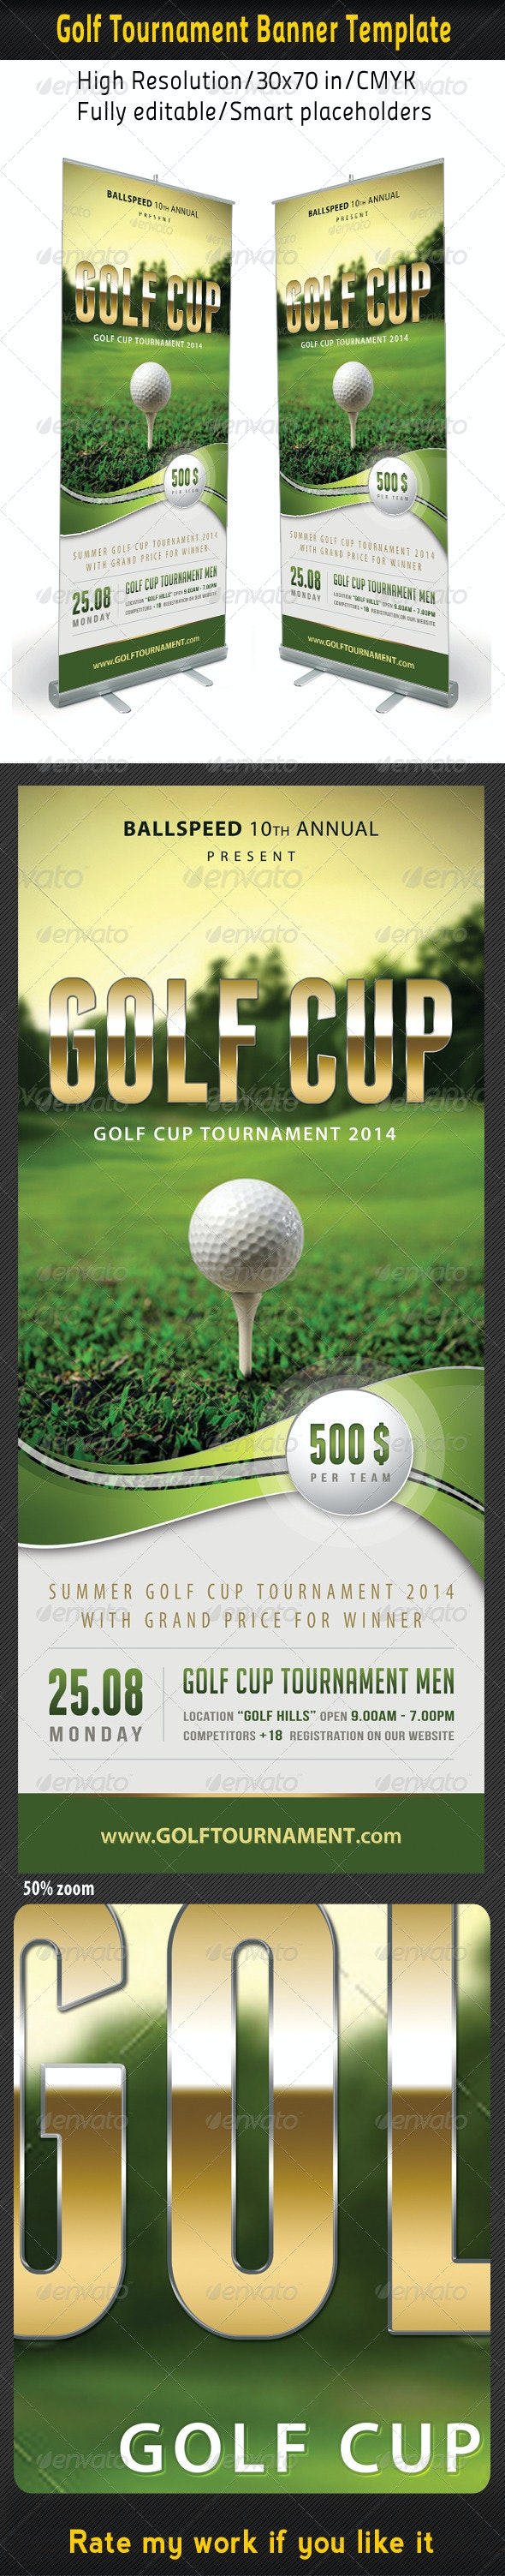 Golf Event Banner Template 01 - Signage Print Templates